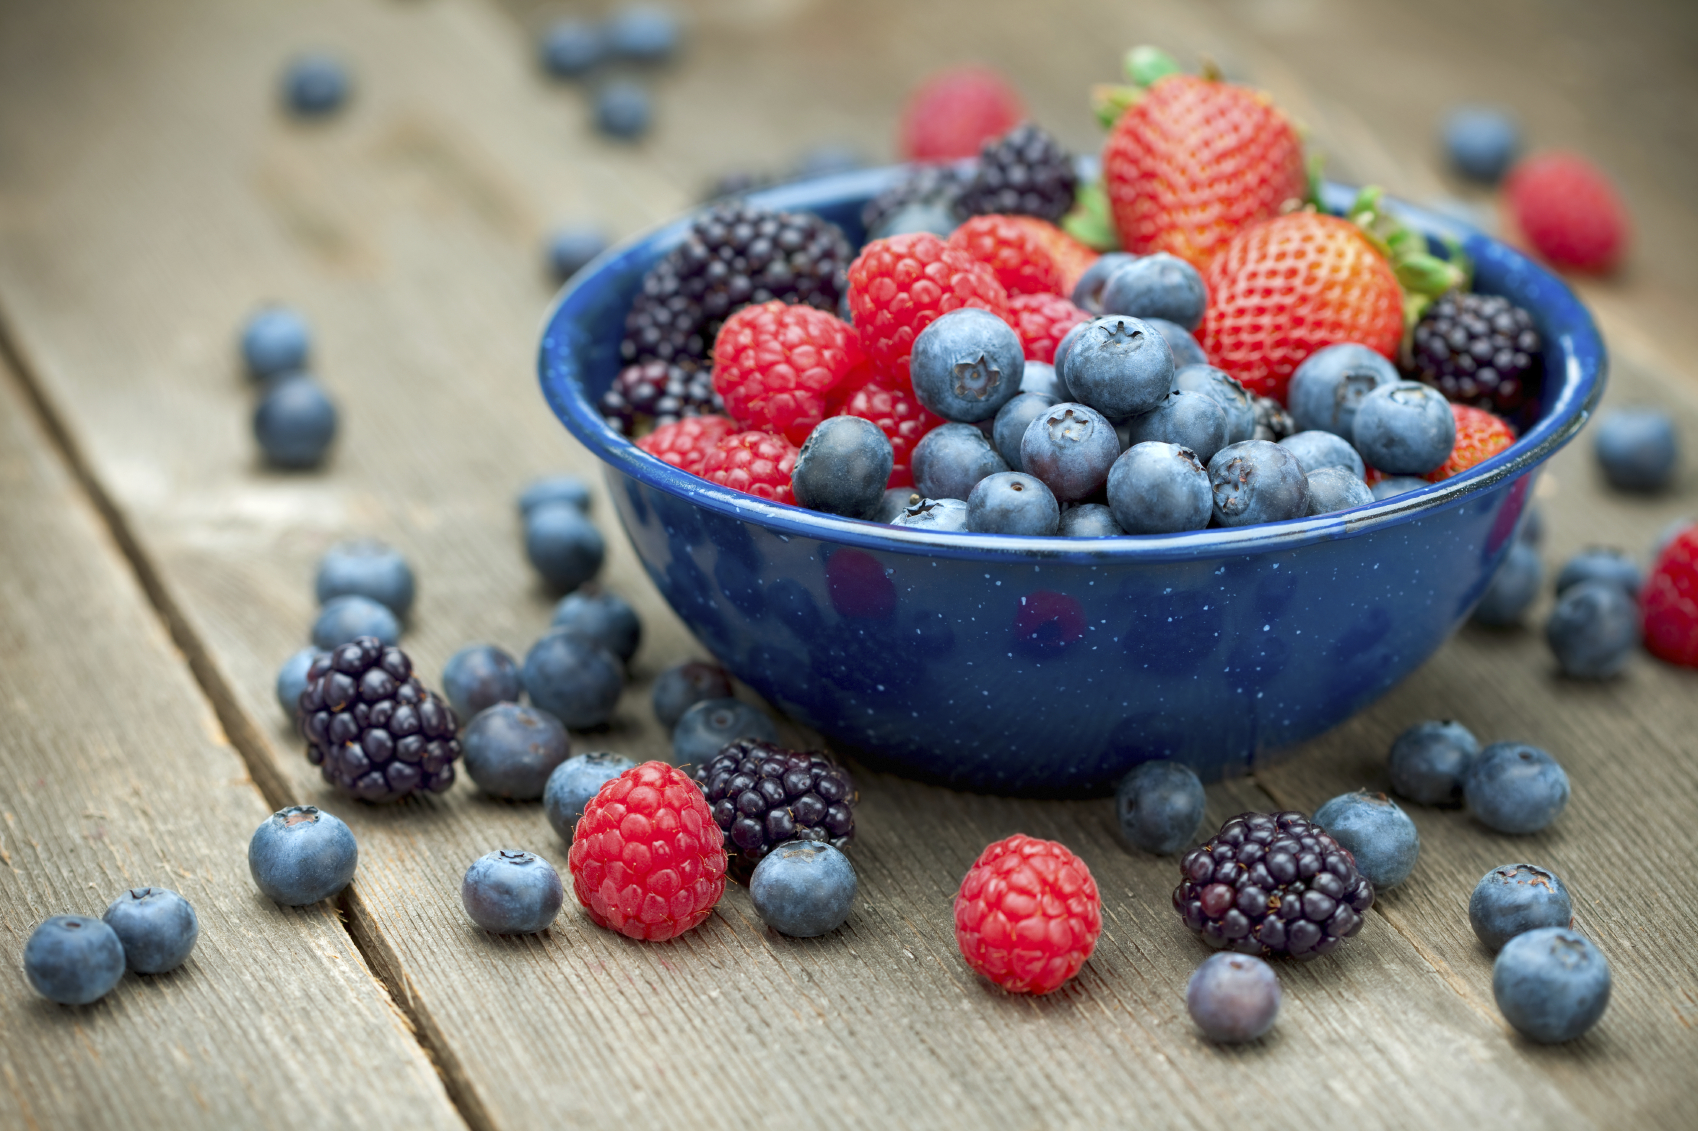 A bowlful of delicious organic berries. Strawberries, blackberries, blueberries and raspberries. Shallow dof